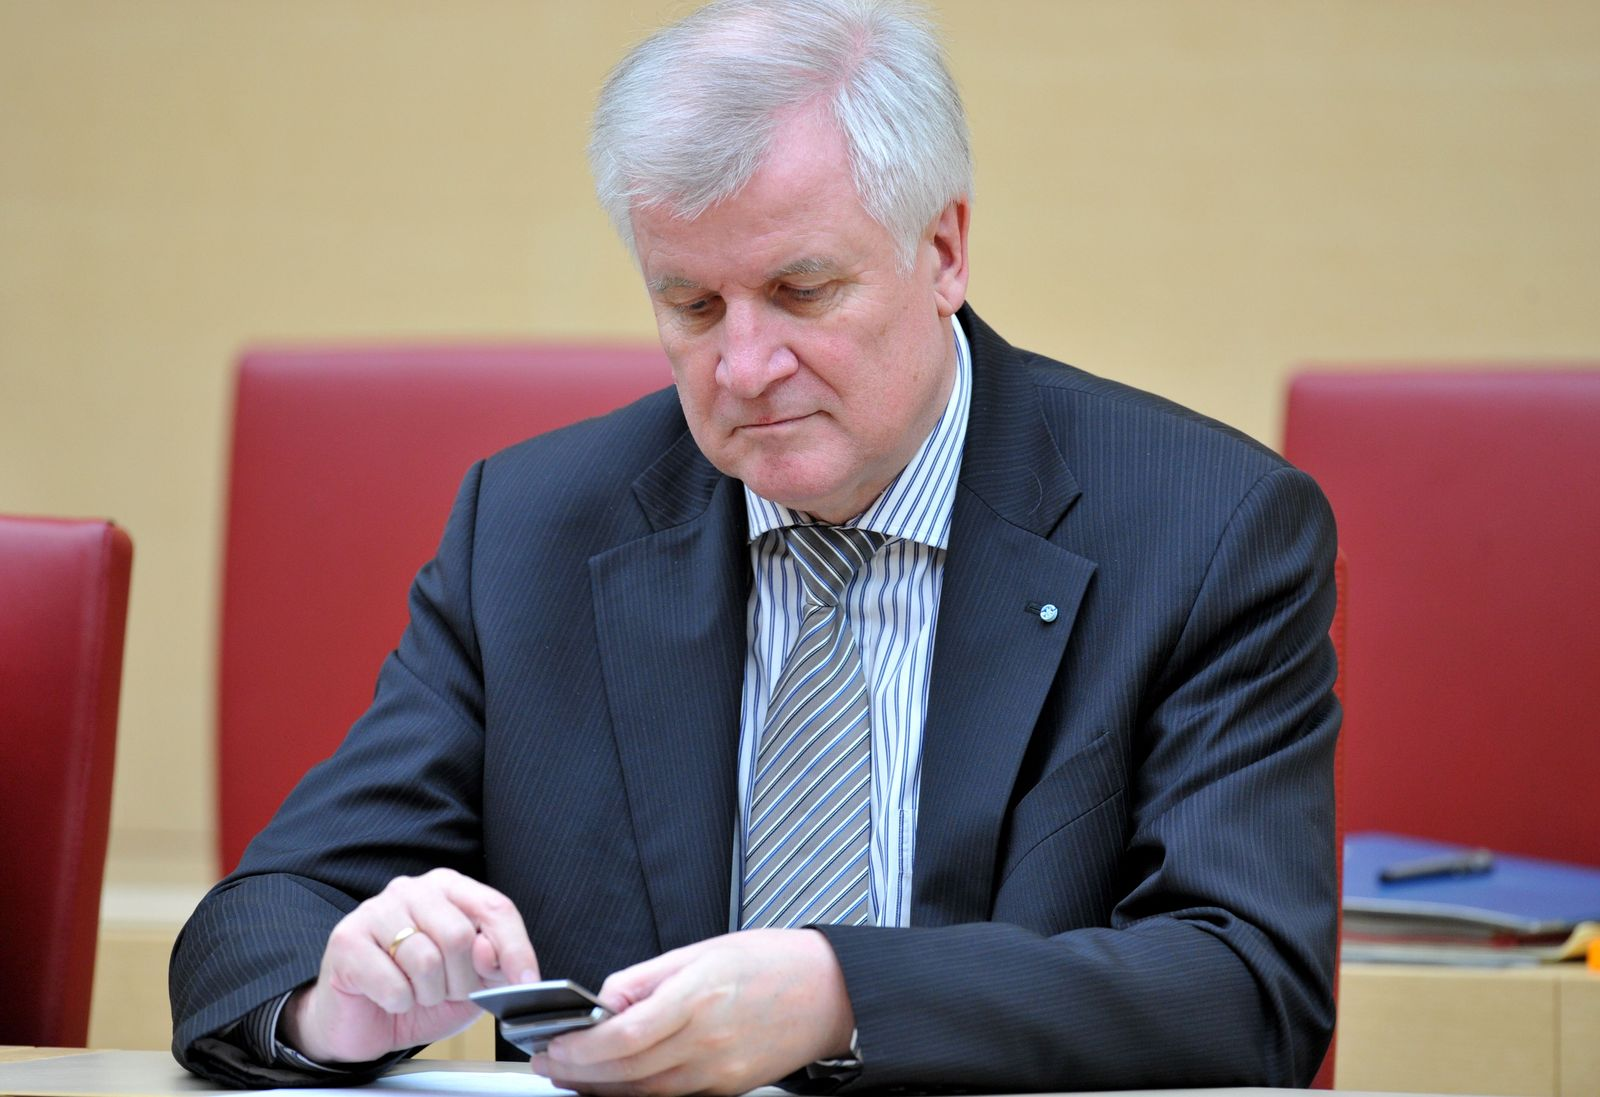 Seehofer / Handy